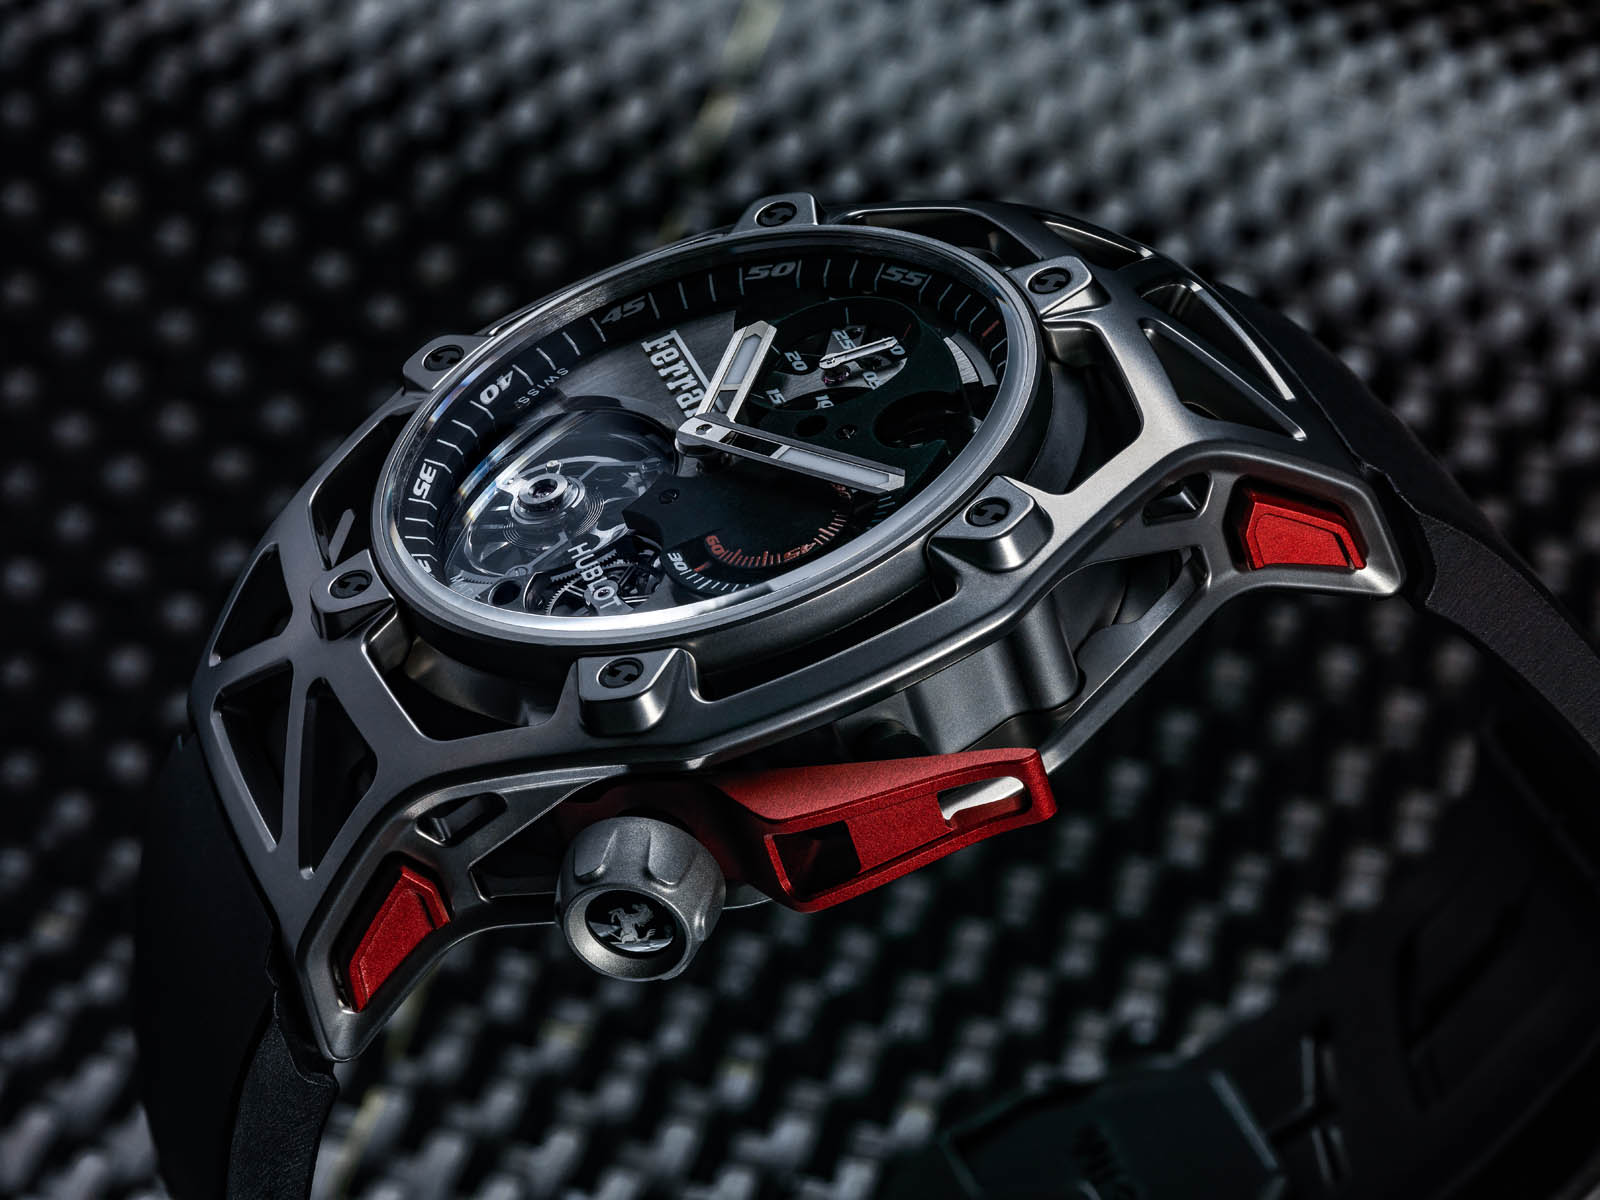 hublot 39 s new tourbillon chronograph is a ferrari for your wrist. Black Bedroom Furniture Sets. Home Design Ideas